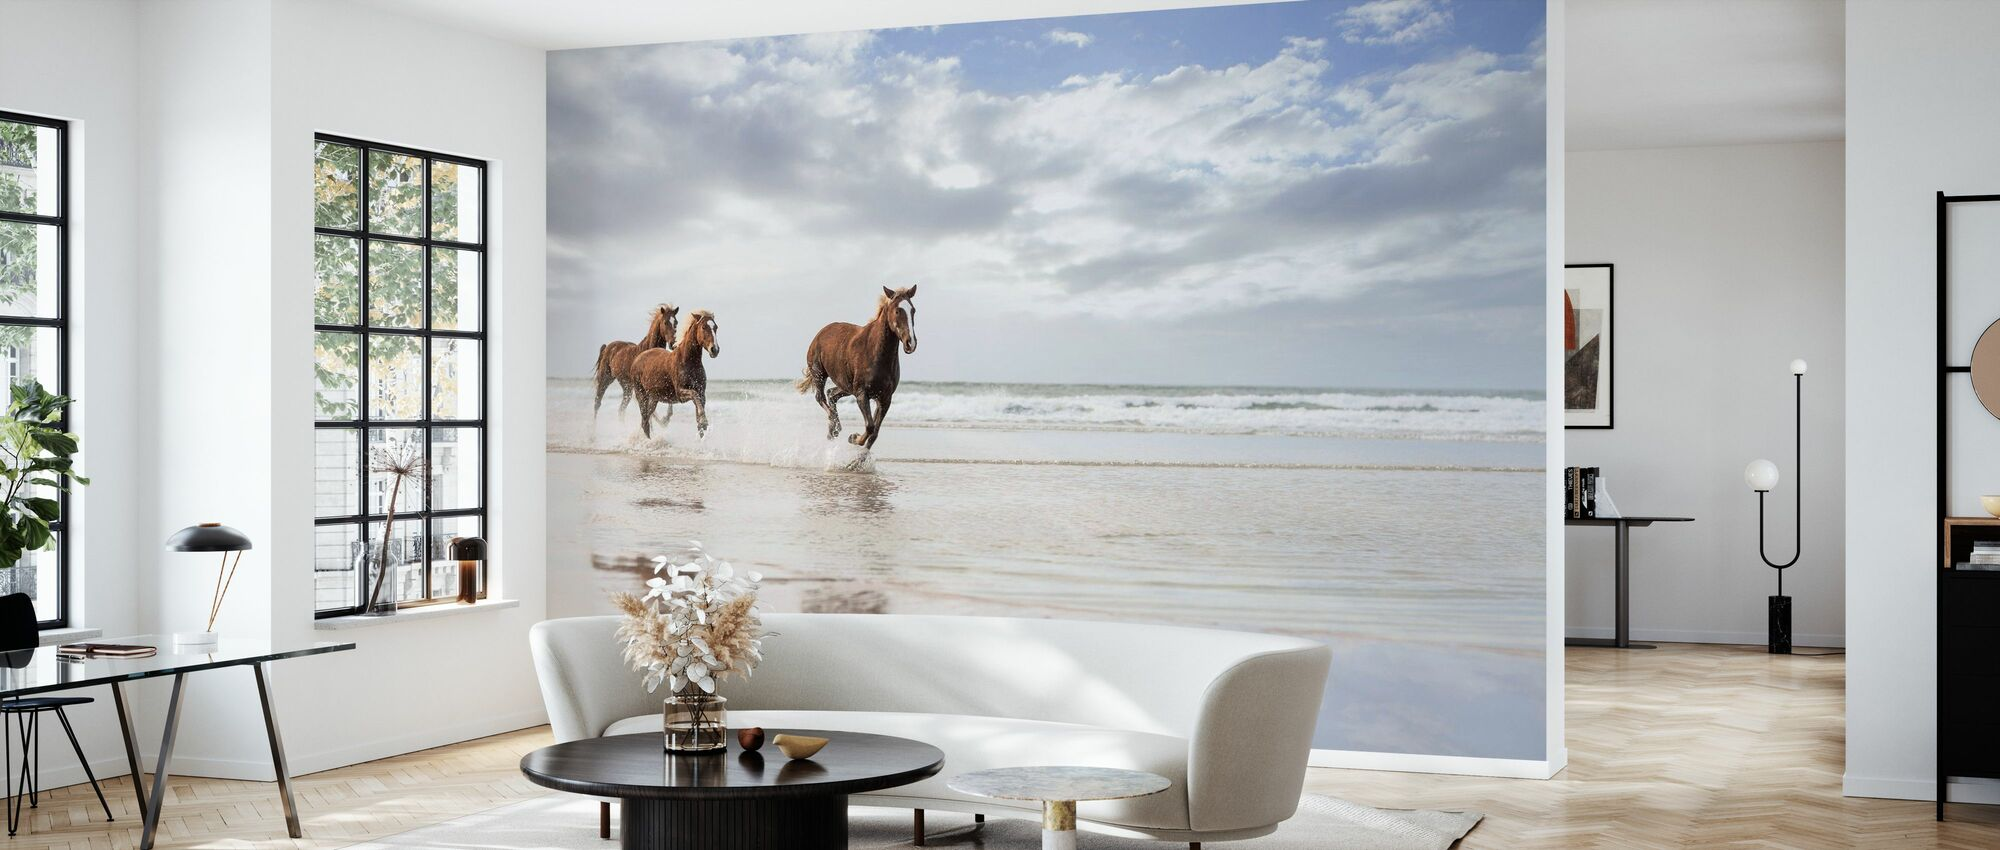 Horses on South African Beach - Wallpaper - Living Room